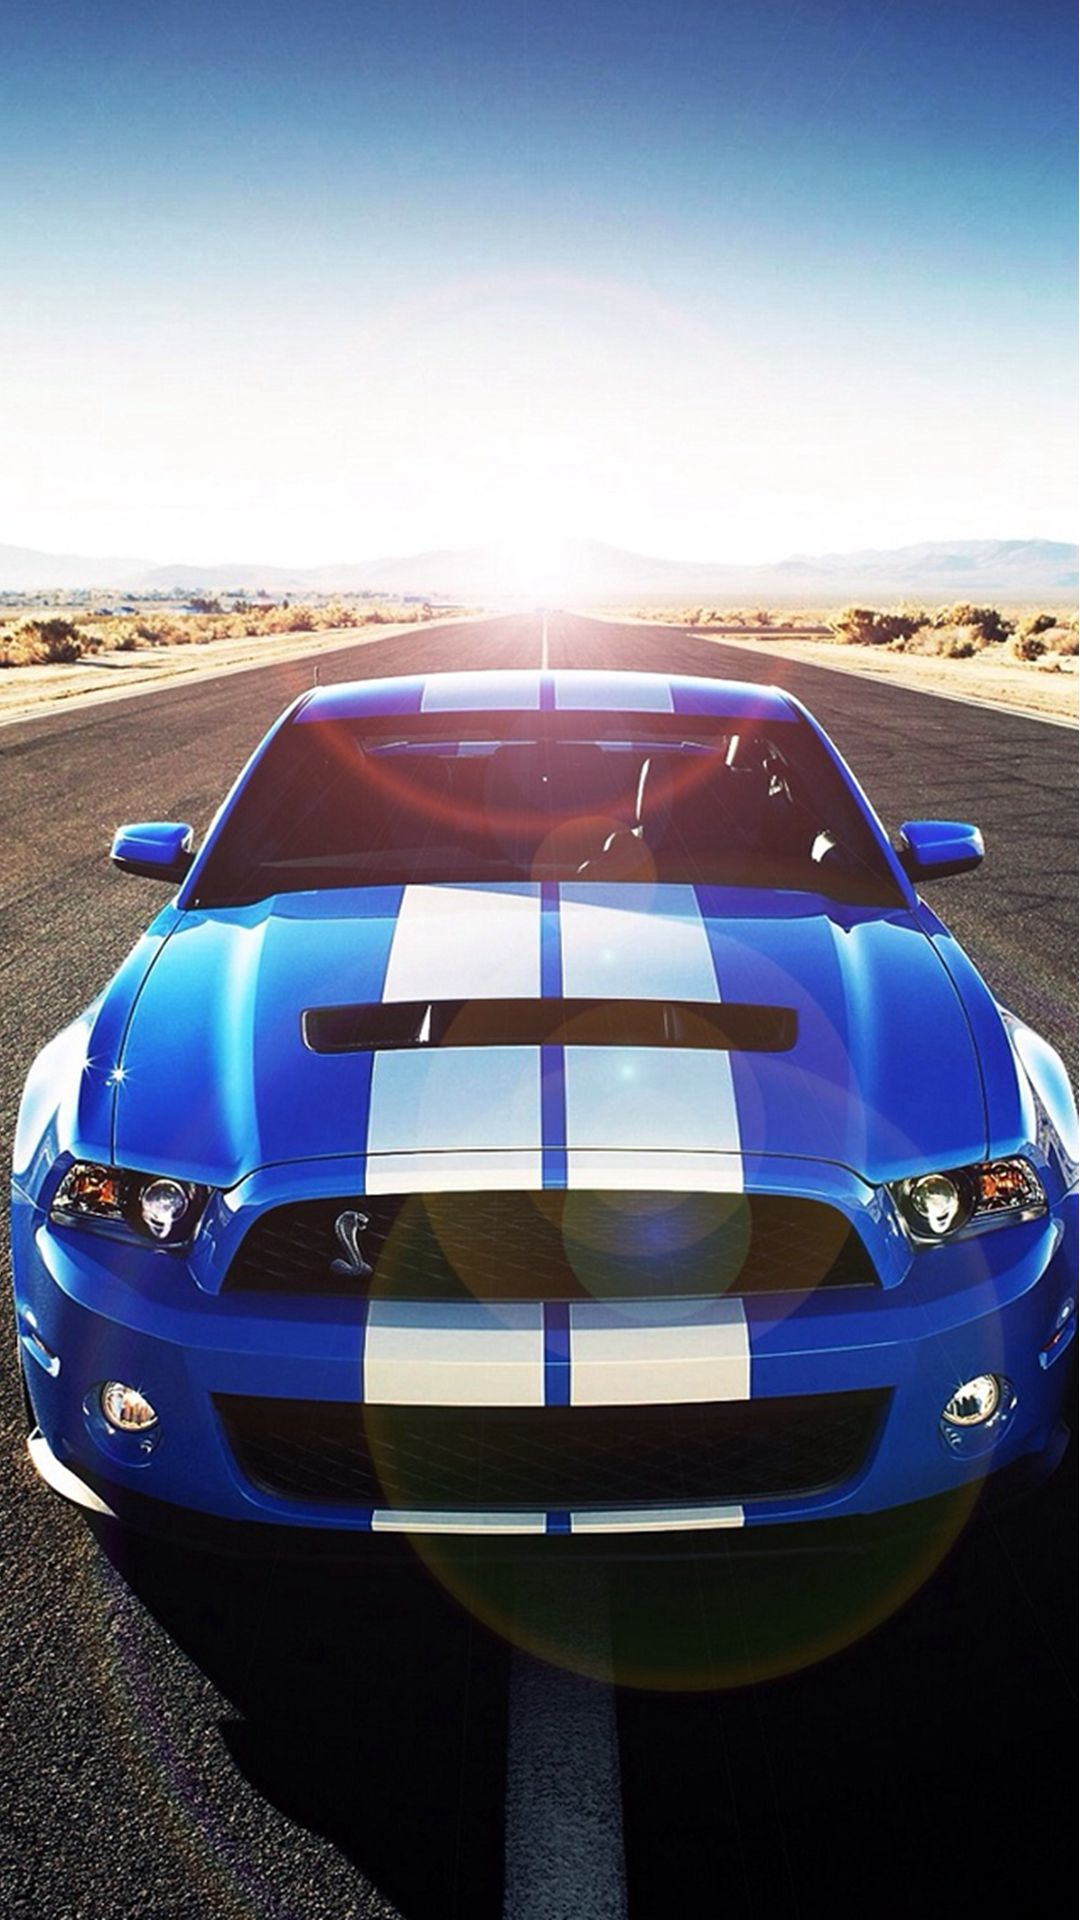 wallpaper.wiki-Sunshine-Road-Blue-Cool-Car-iphone-wallpaper-PIC-WPC007914